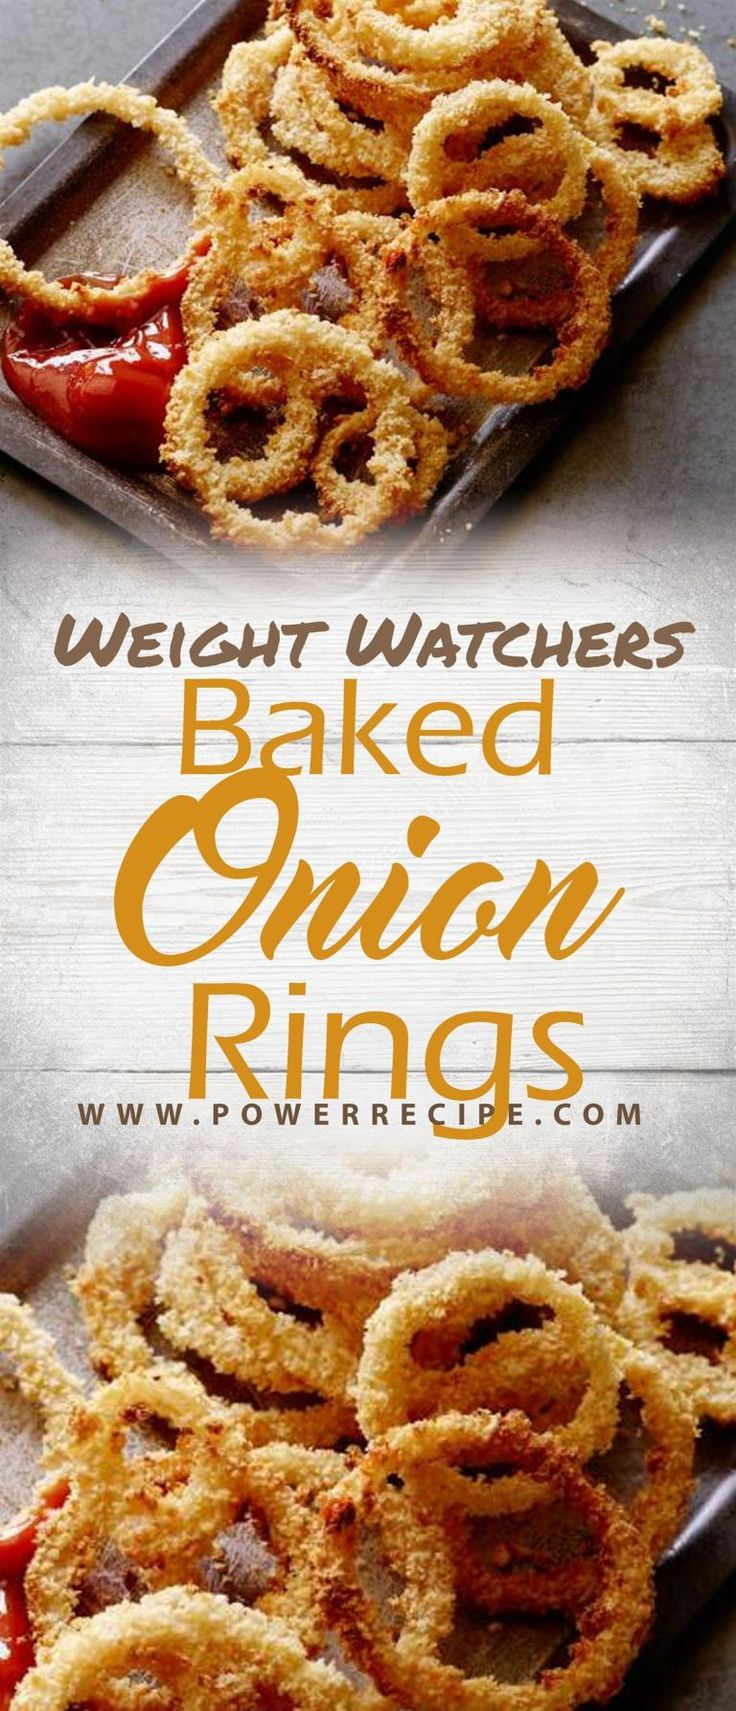 Baked Onion Rings – All about Your Power Recipes